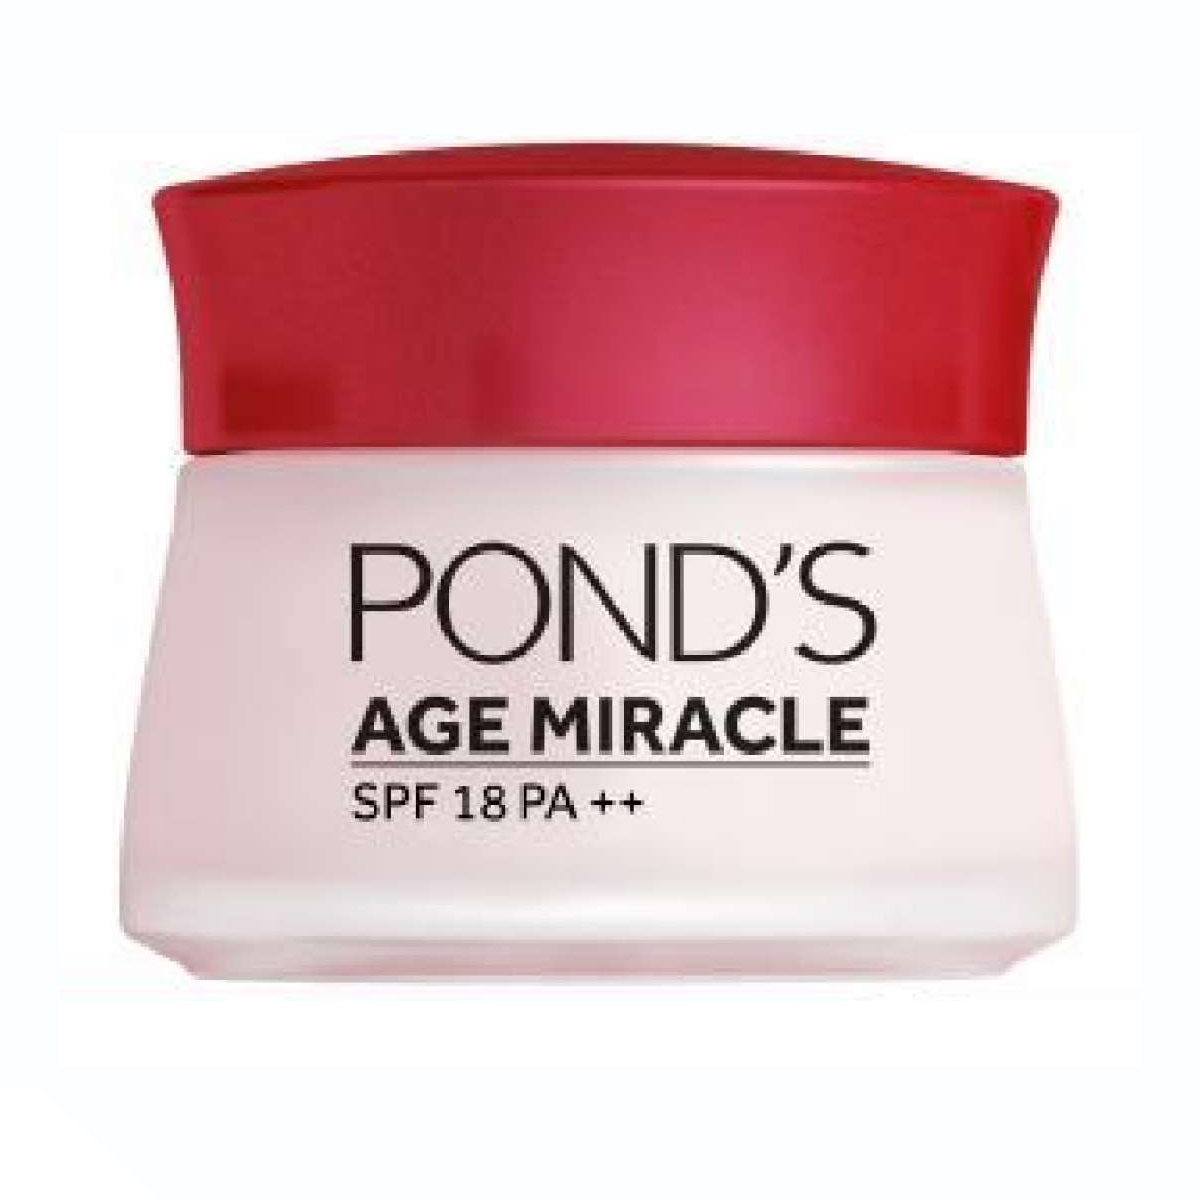 Pond's Age Miracle 25g